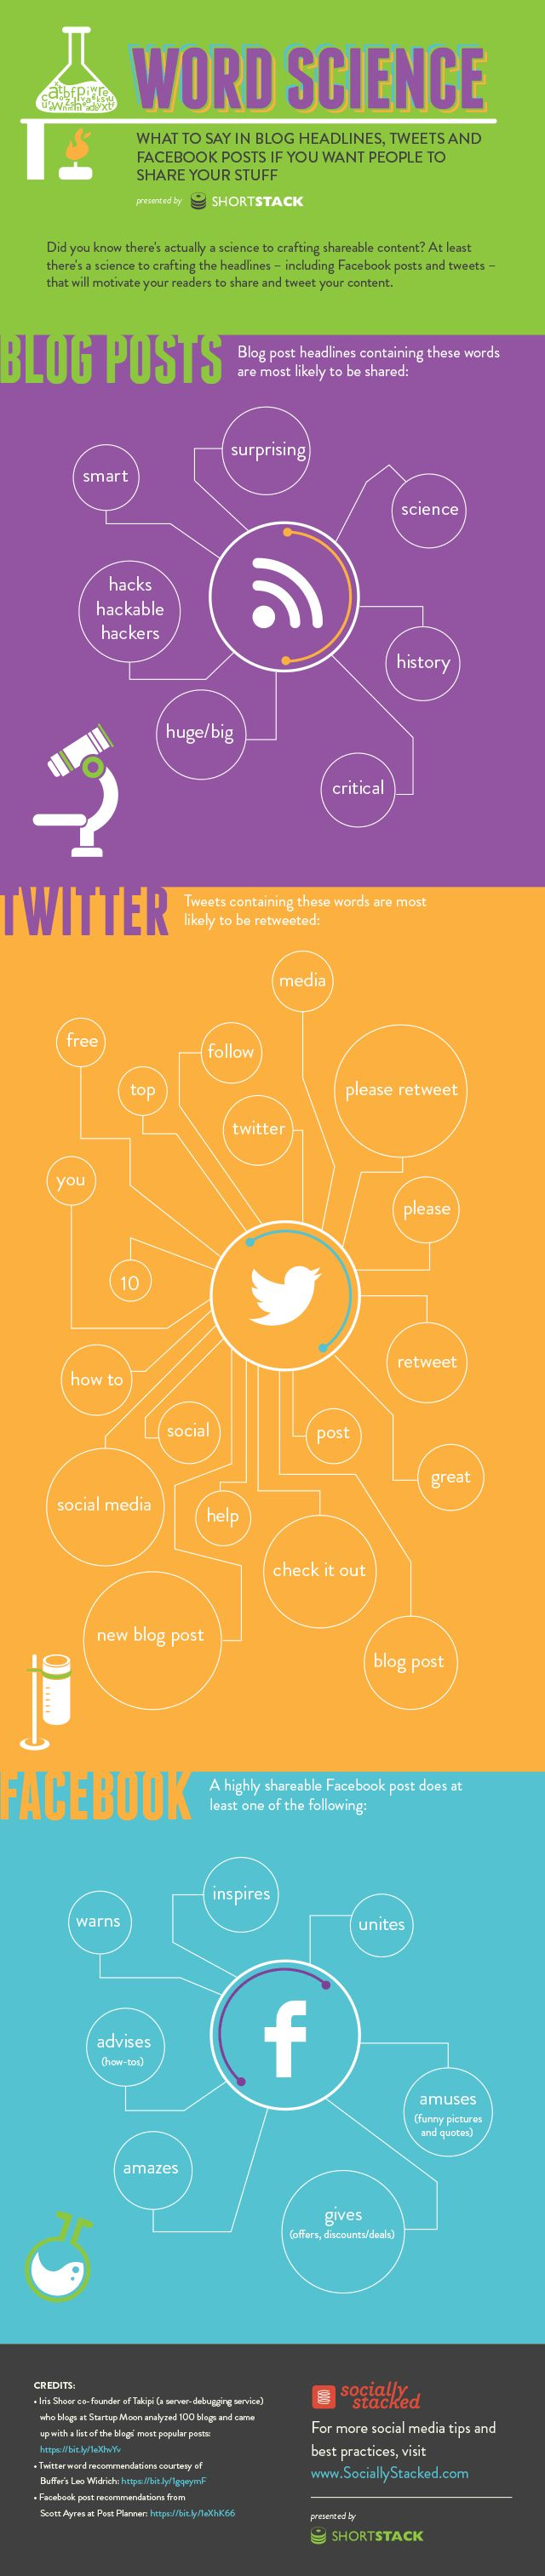 Word Science: The Best Words to use for #Twitter, #Facebook and Blog Titles [Infographic] SociallyStacked #socialmedia